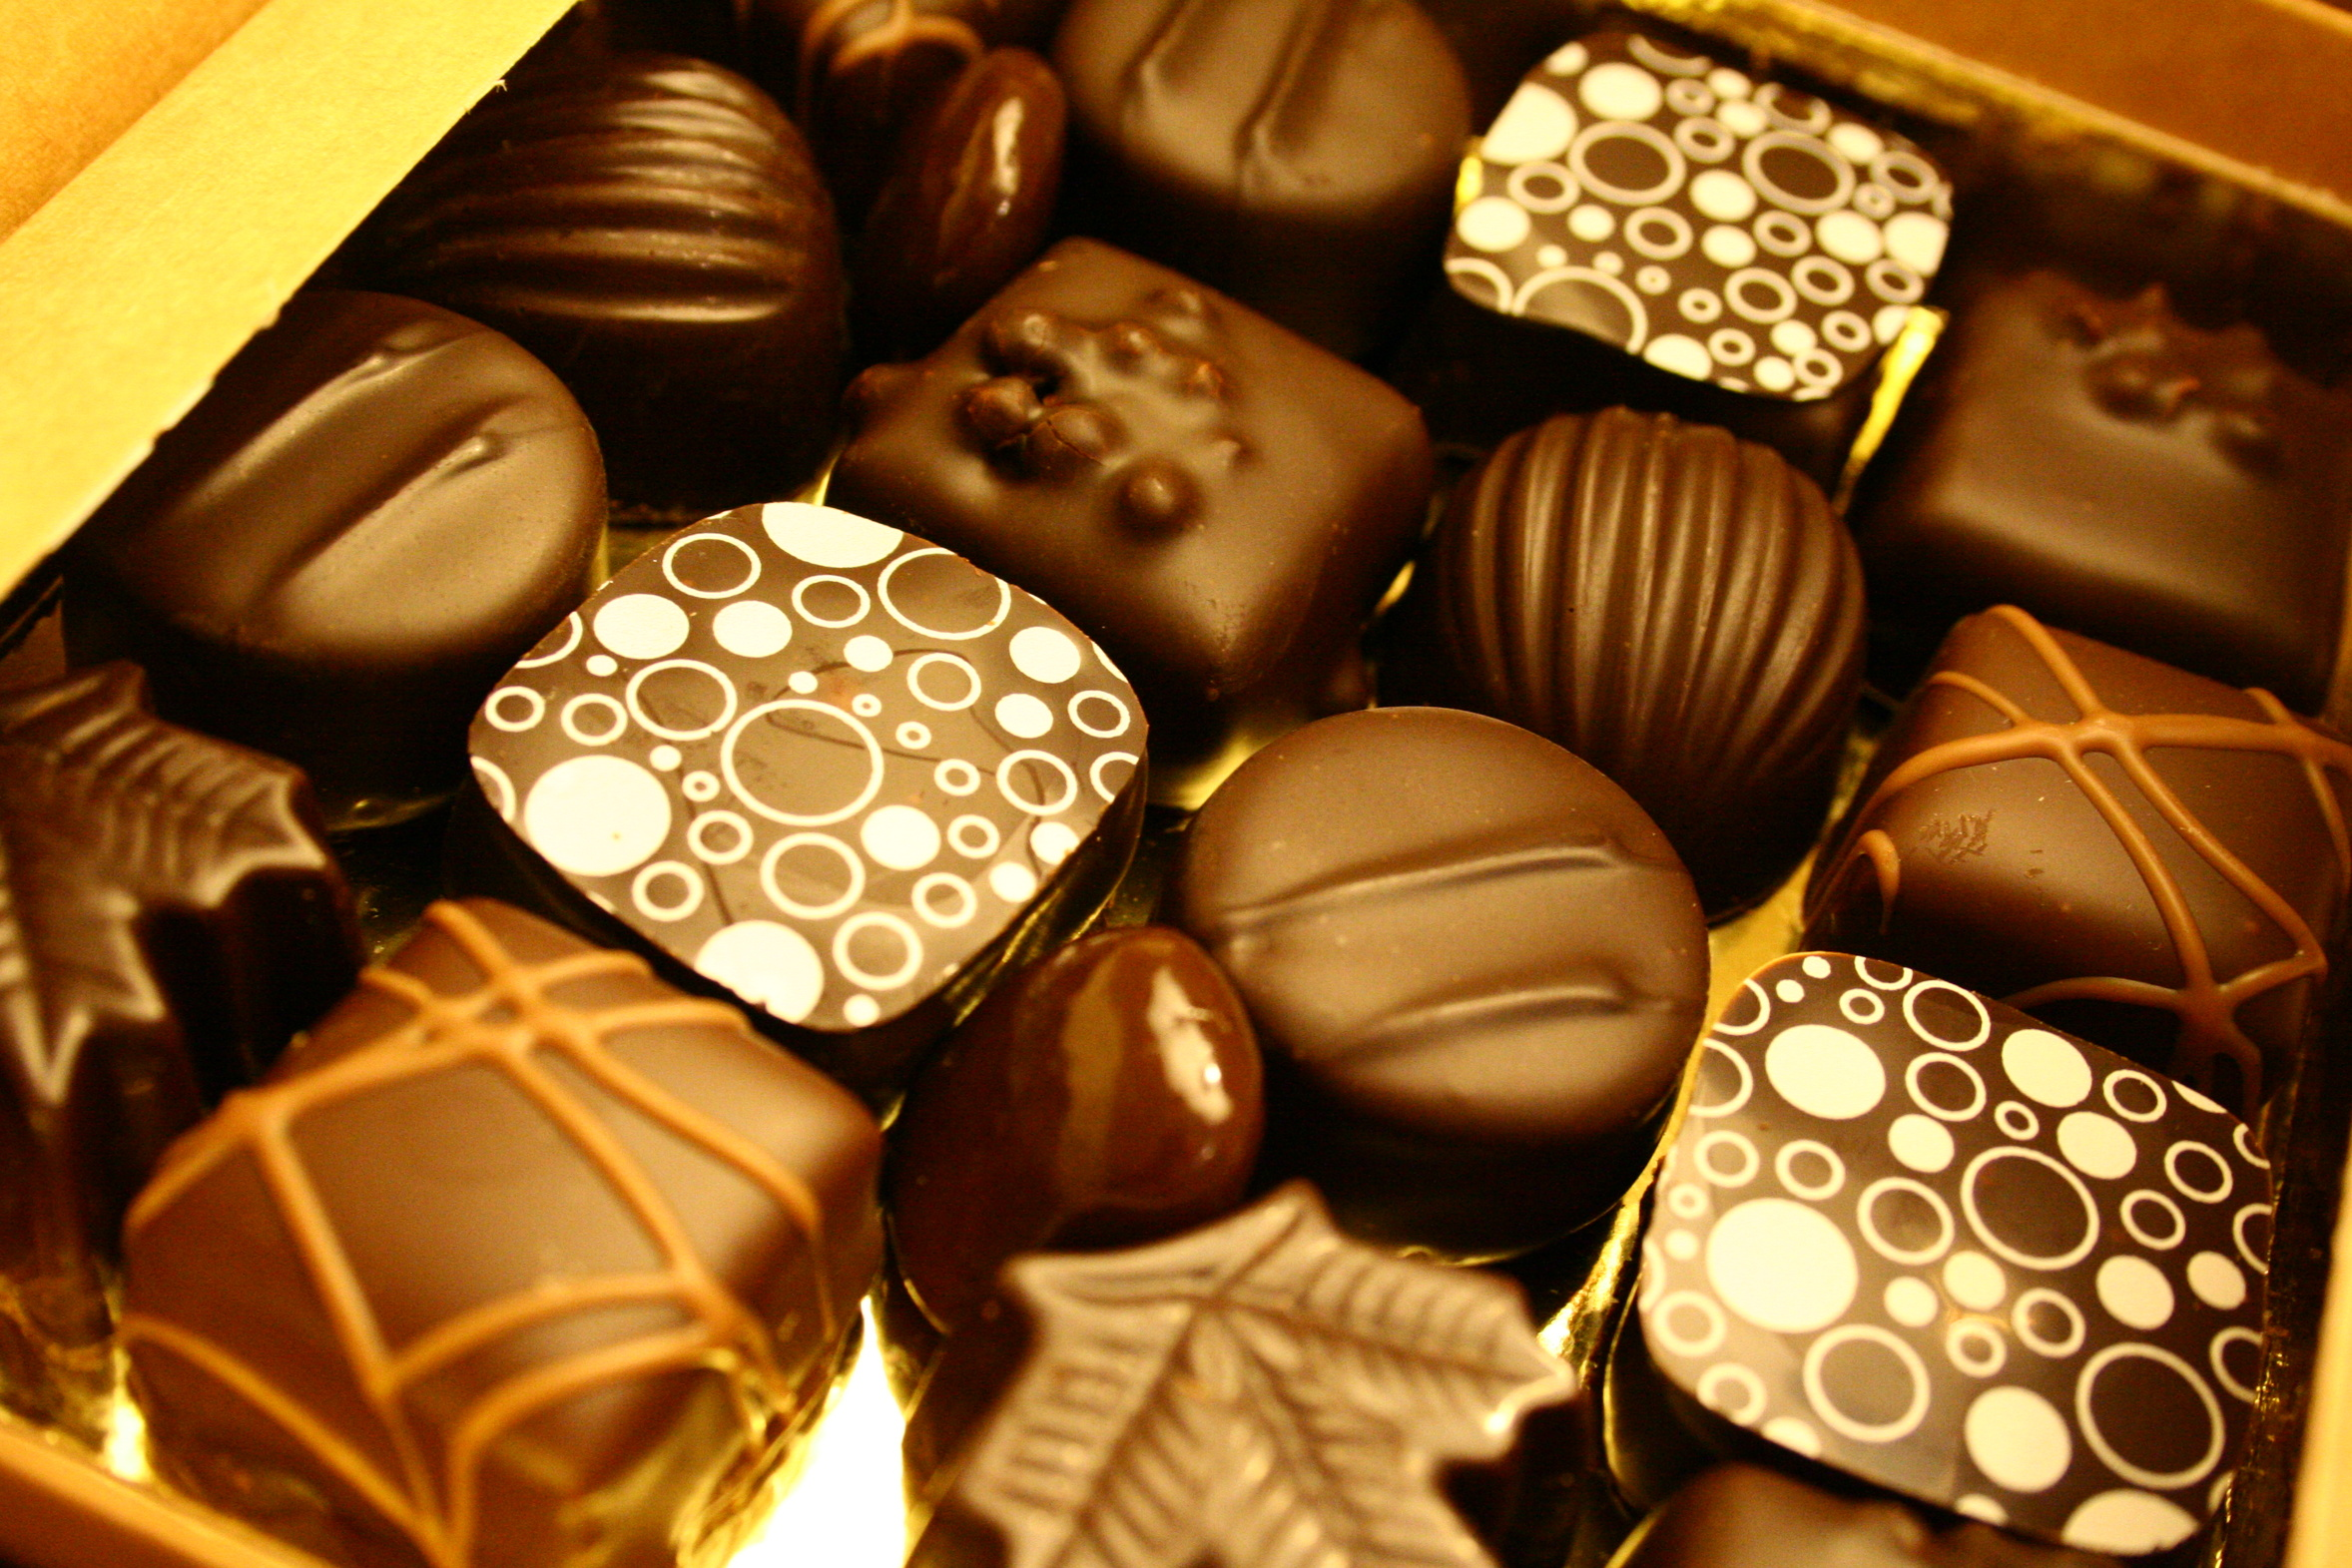 chocolats - Photo